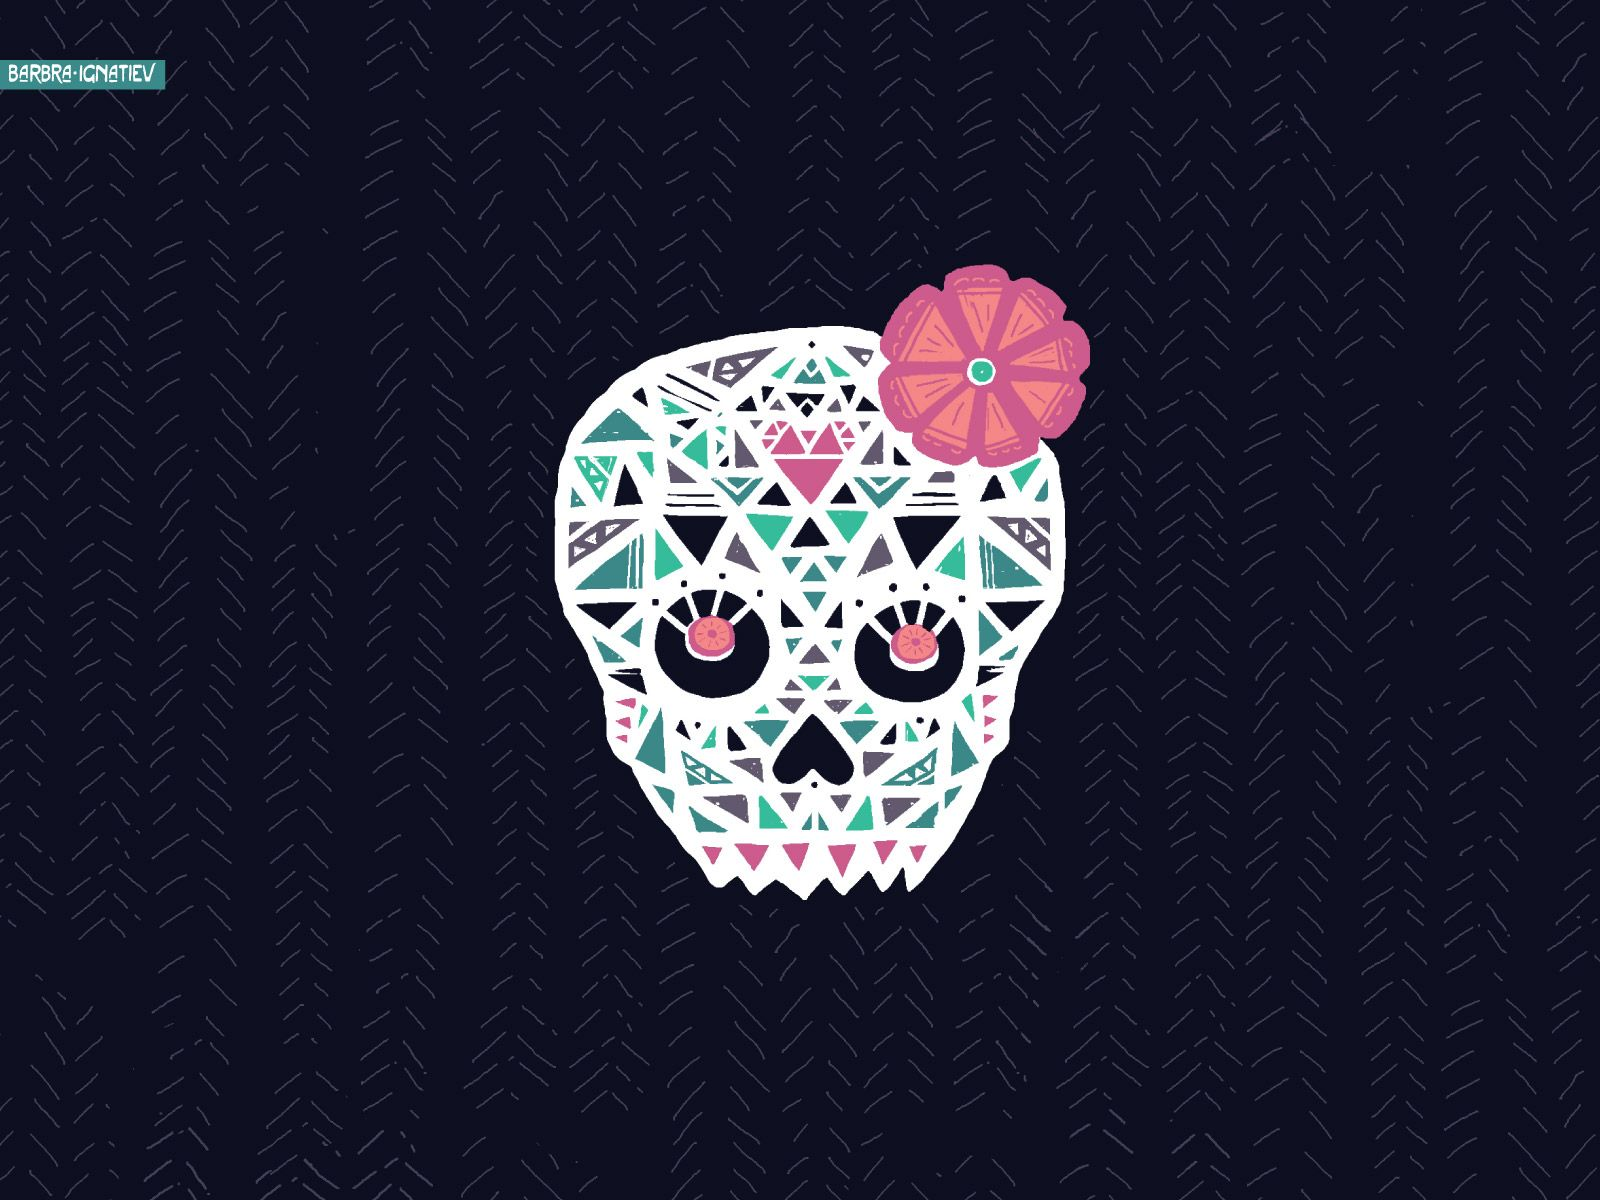 Hipster Iphone Wallpaper Tumblr: Pink-sugar-skull-wallpaper-mbulaho-tumblr-iphone-wallpaper